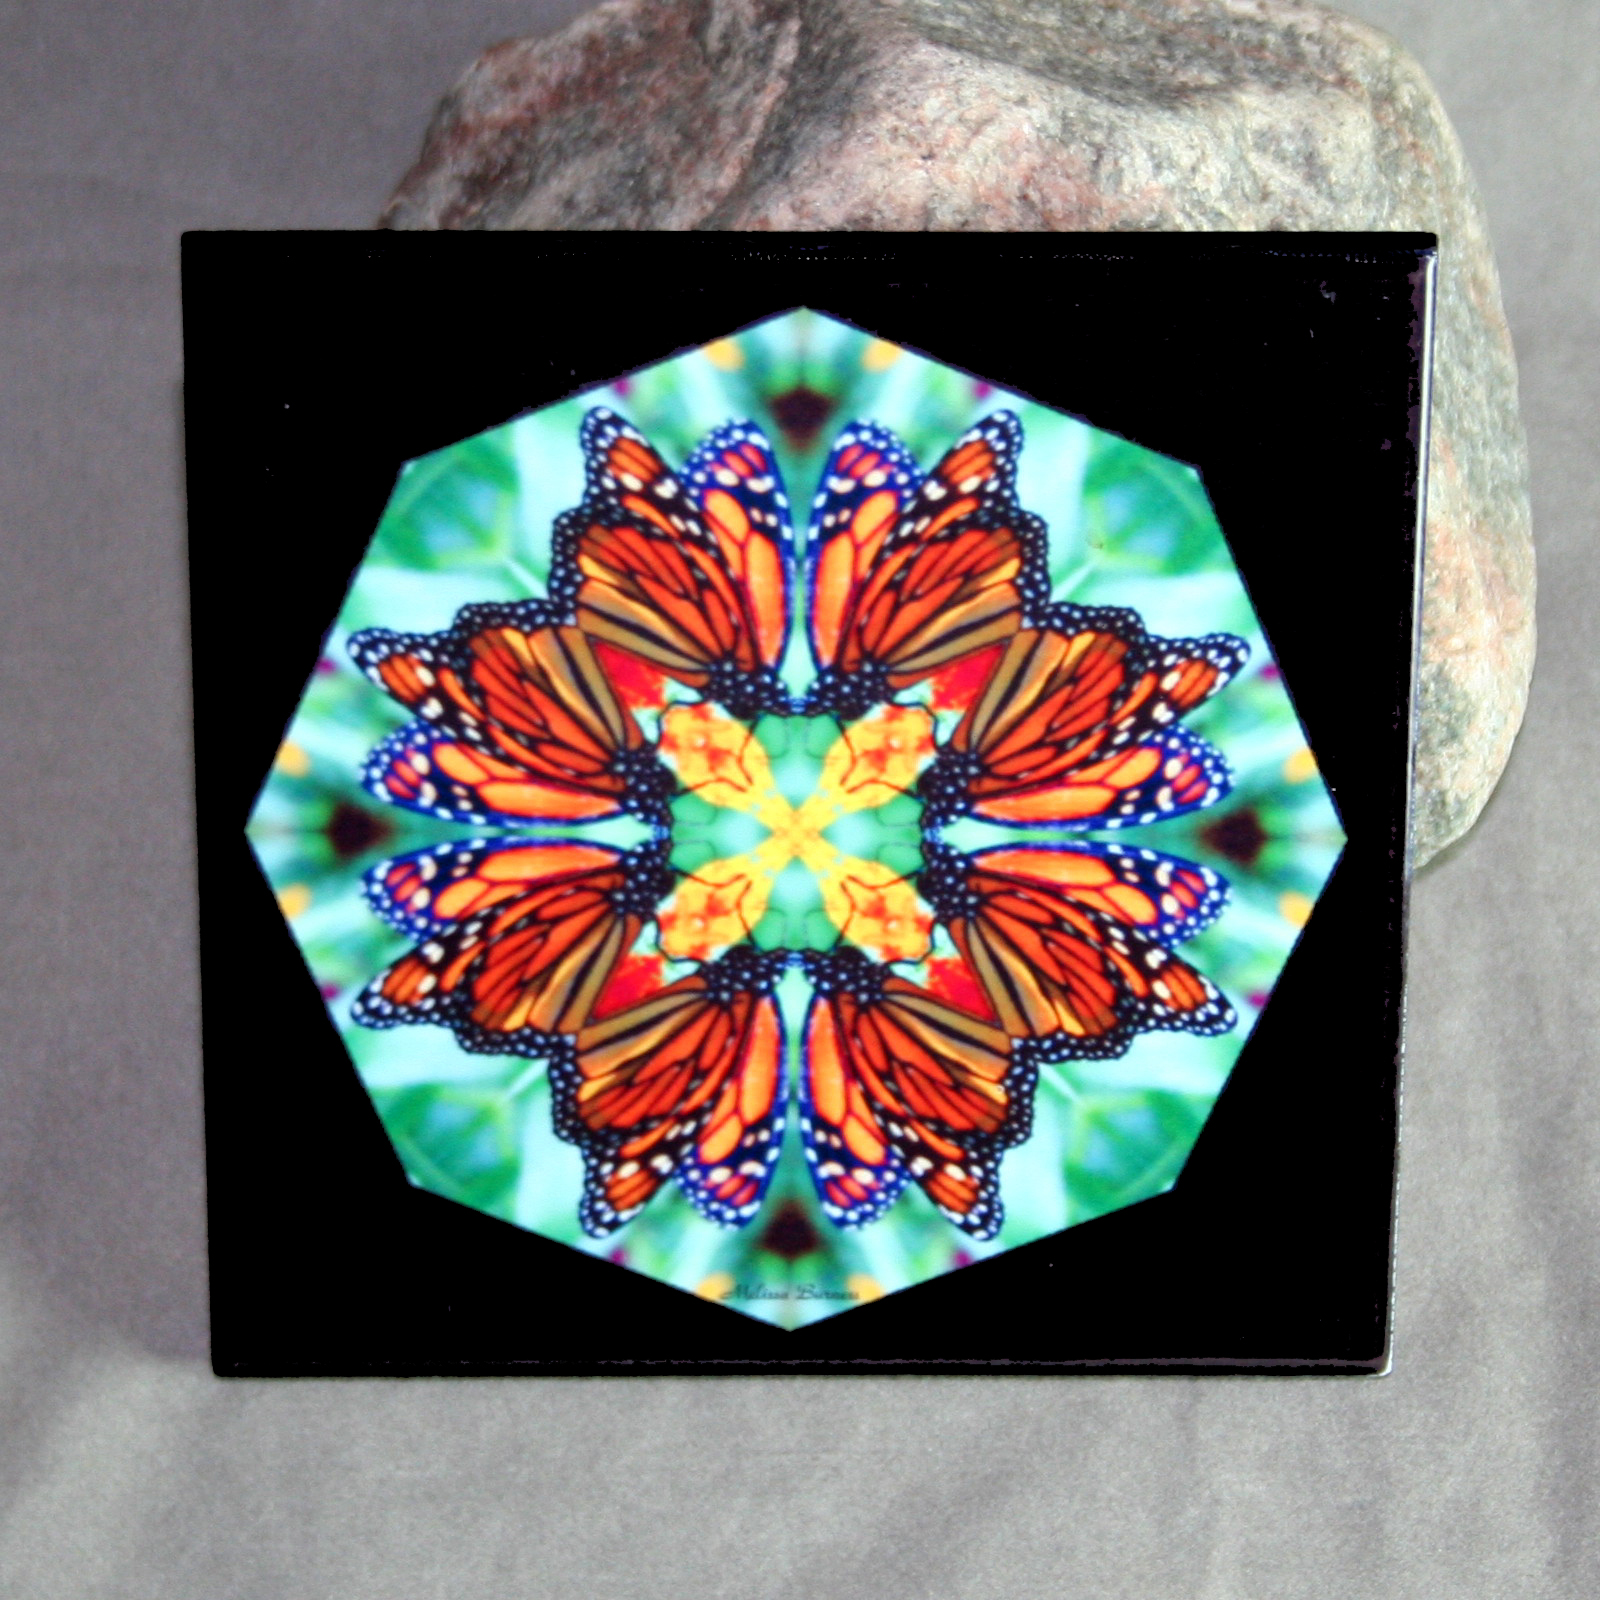 Butterfly decorative ceramic tile mandala sacred geometry decorative ceramic tile decorative dailygadgetfo Image collections